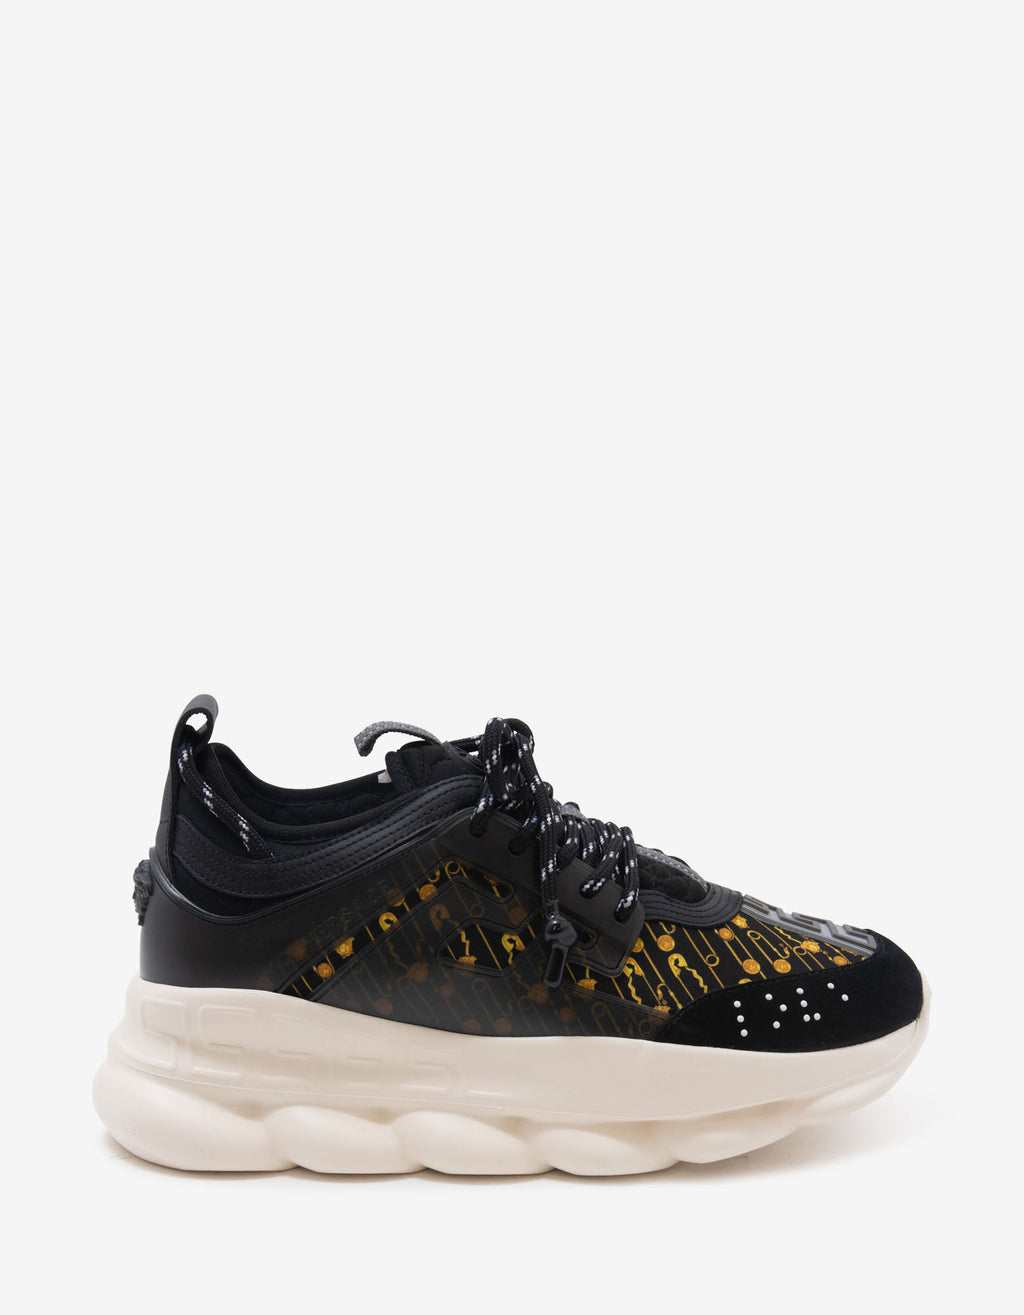 Chain Reaction Safety Pin Print Trainers